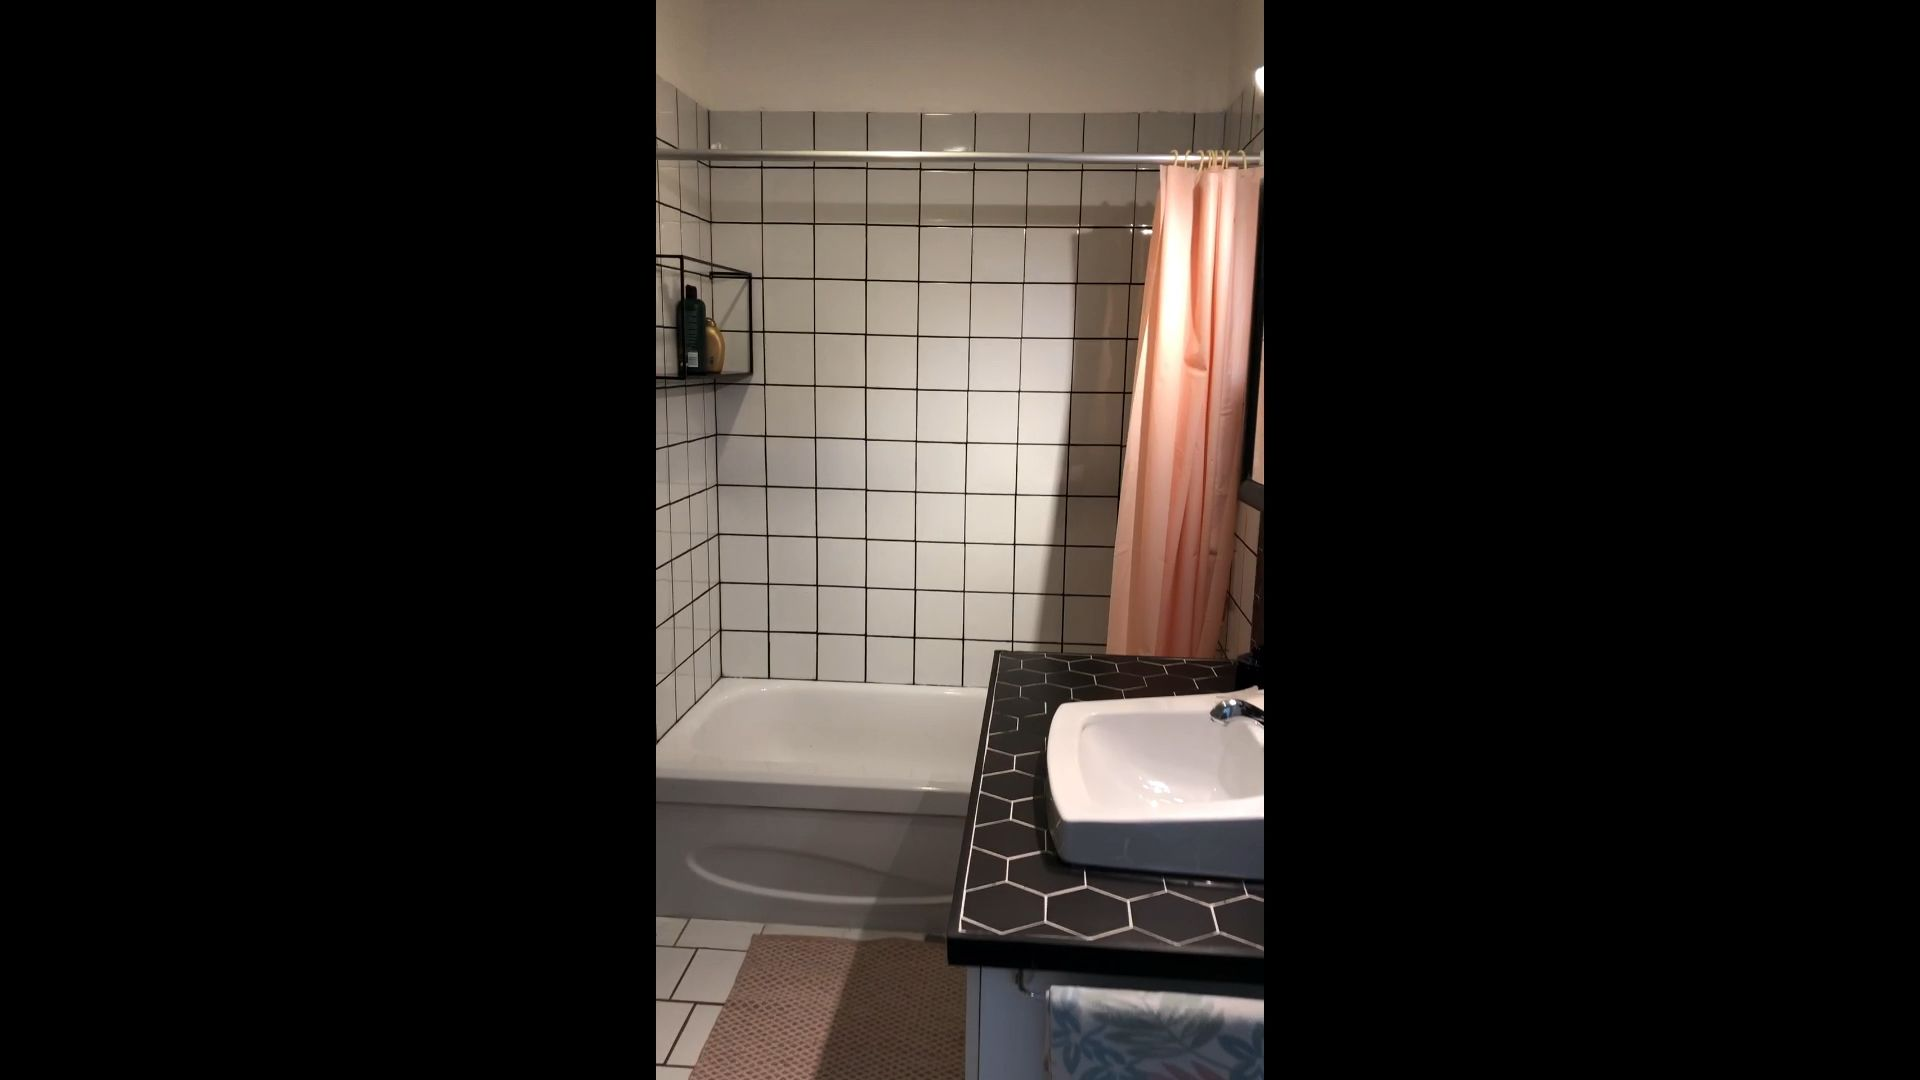 Photo of How to stain grout in black / DIY teindre joints de carrelage